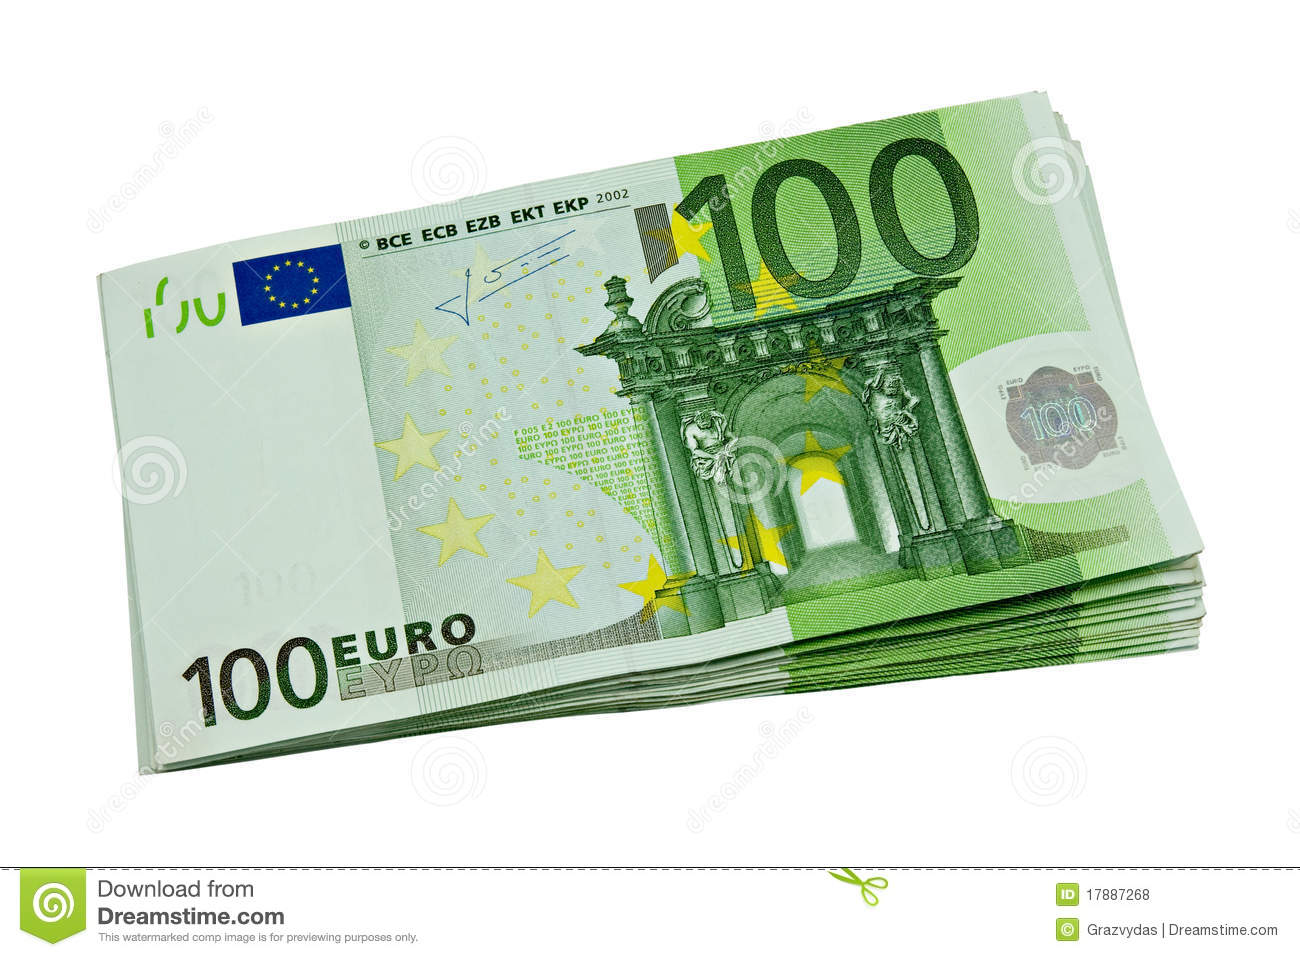 an examination of the concept of a single european currency euro To date, there has been substantial economic analysis of the crisis in the  eurozone,  subsequently conclude that the long-term survival of the eurozone  requires the  europe's economic and monetary union (emu) had become a  reality in january  later replaced their national currencies with the new common  currency.